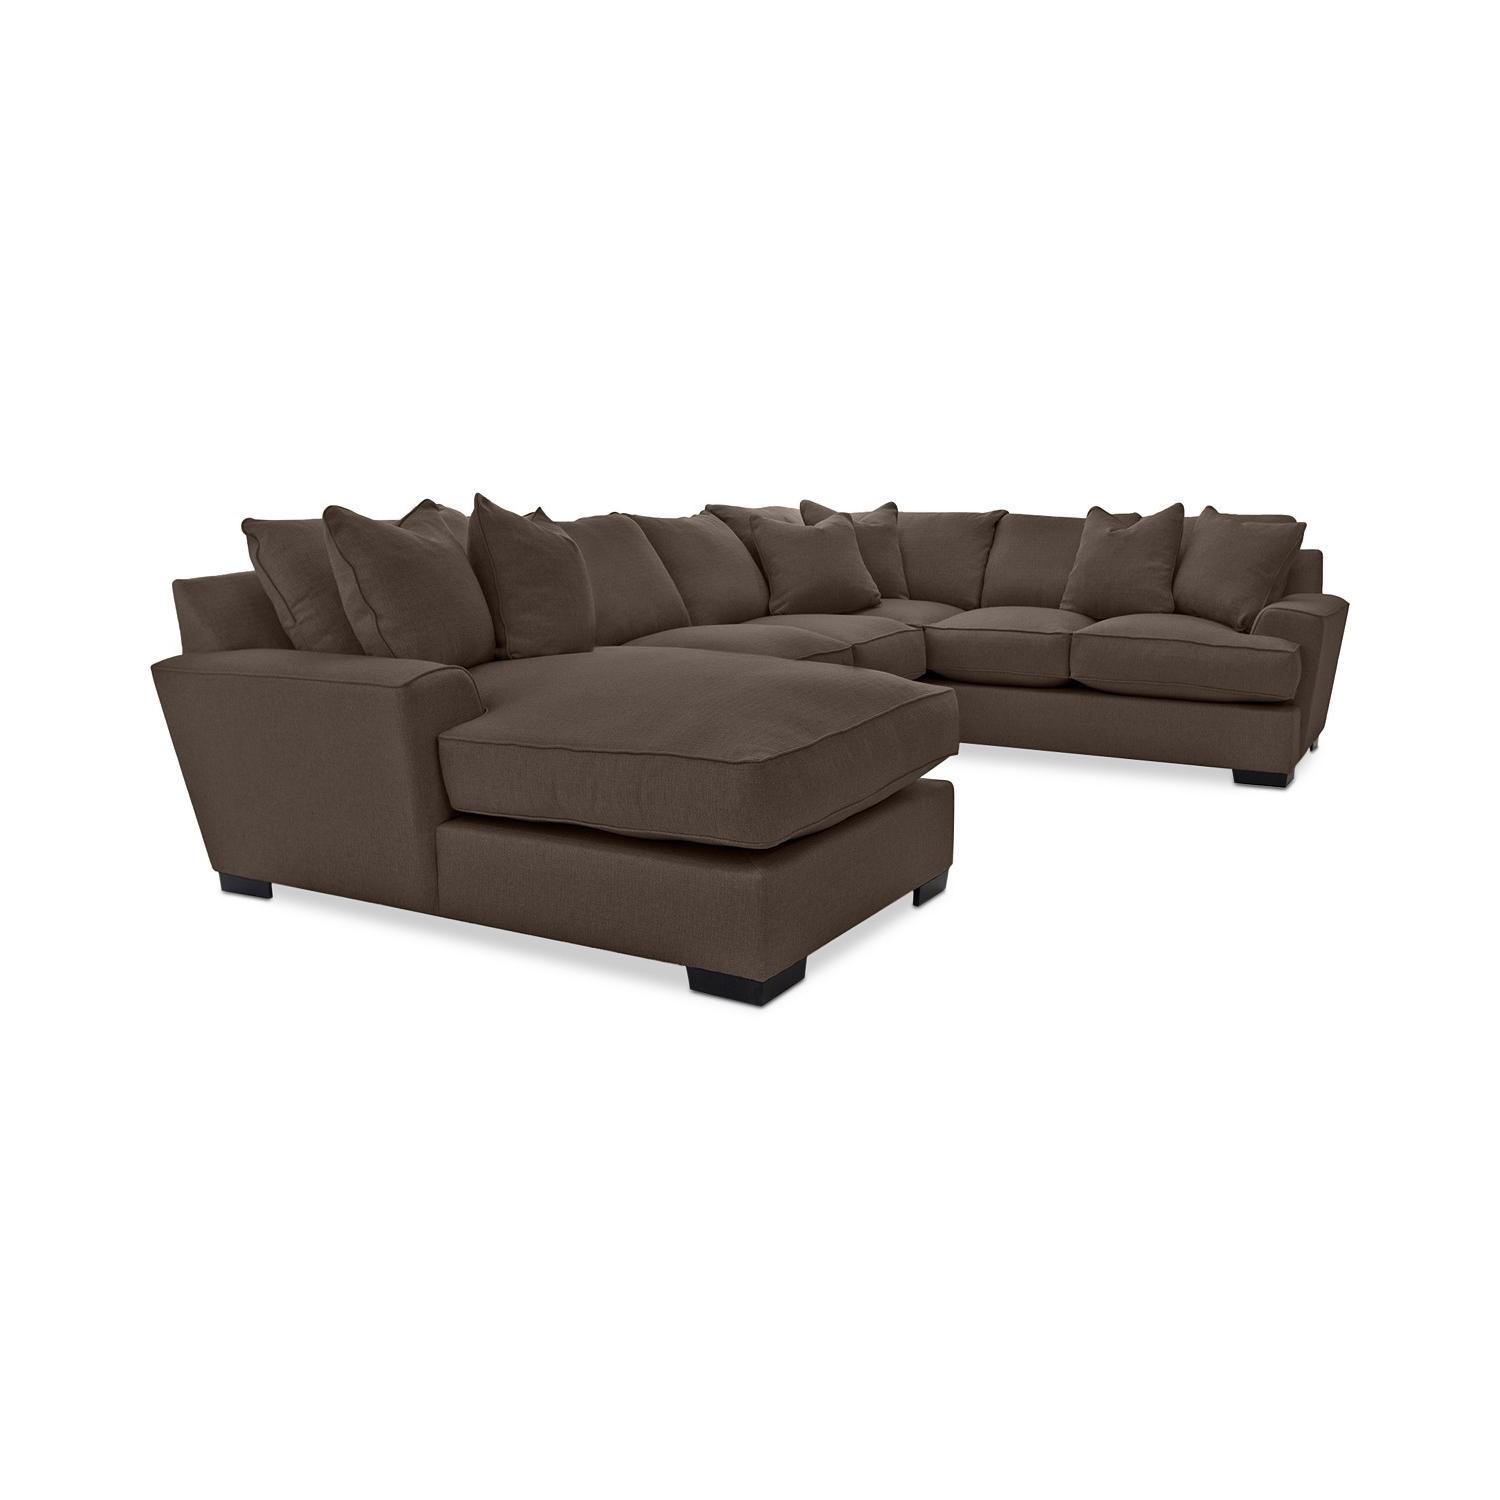 Macy's Ainsley 3-Piece Fabric Chaise Sectional Sofa - image-1